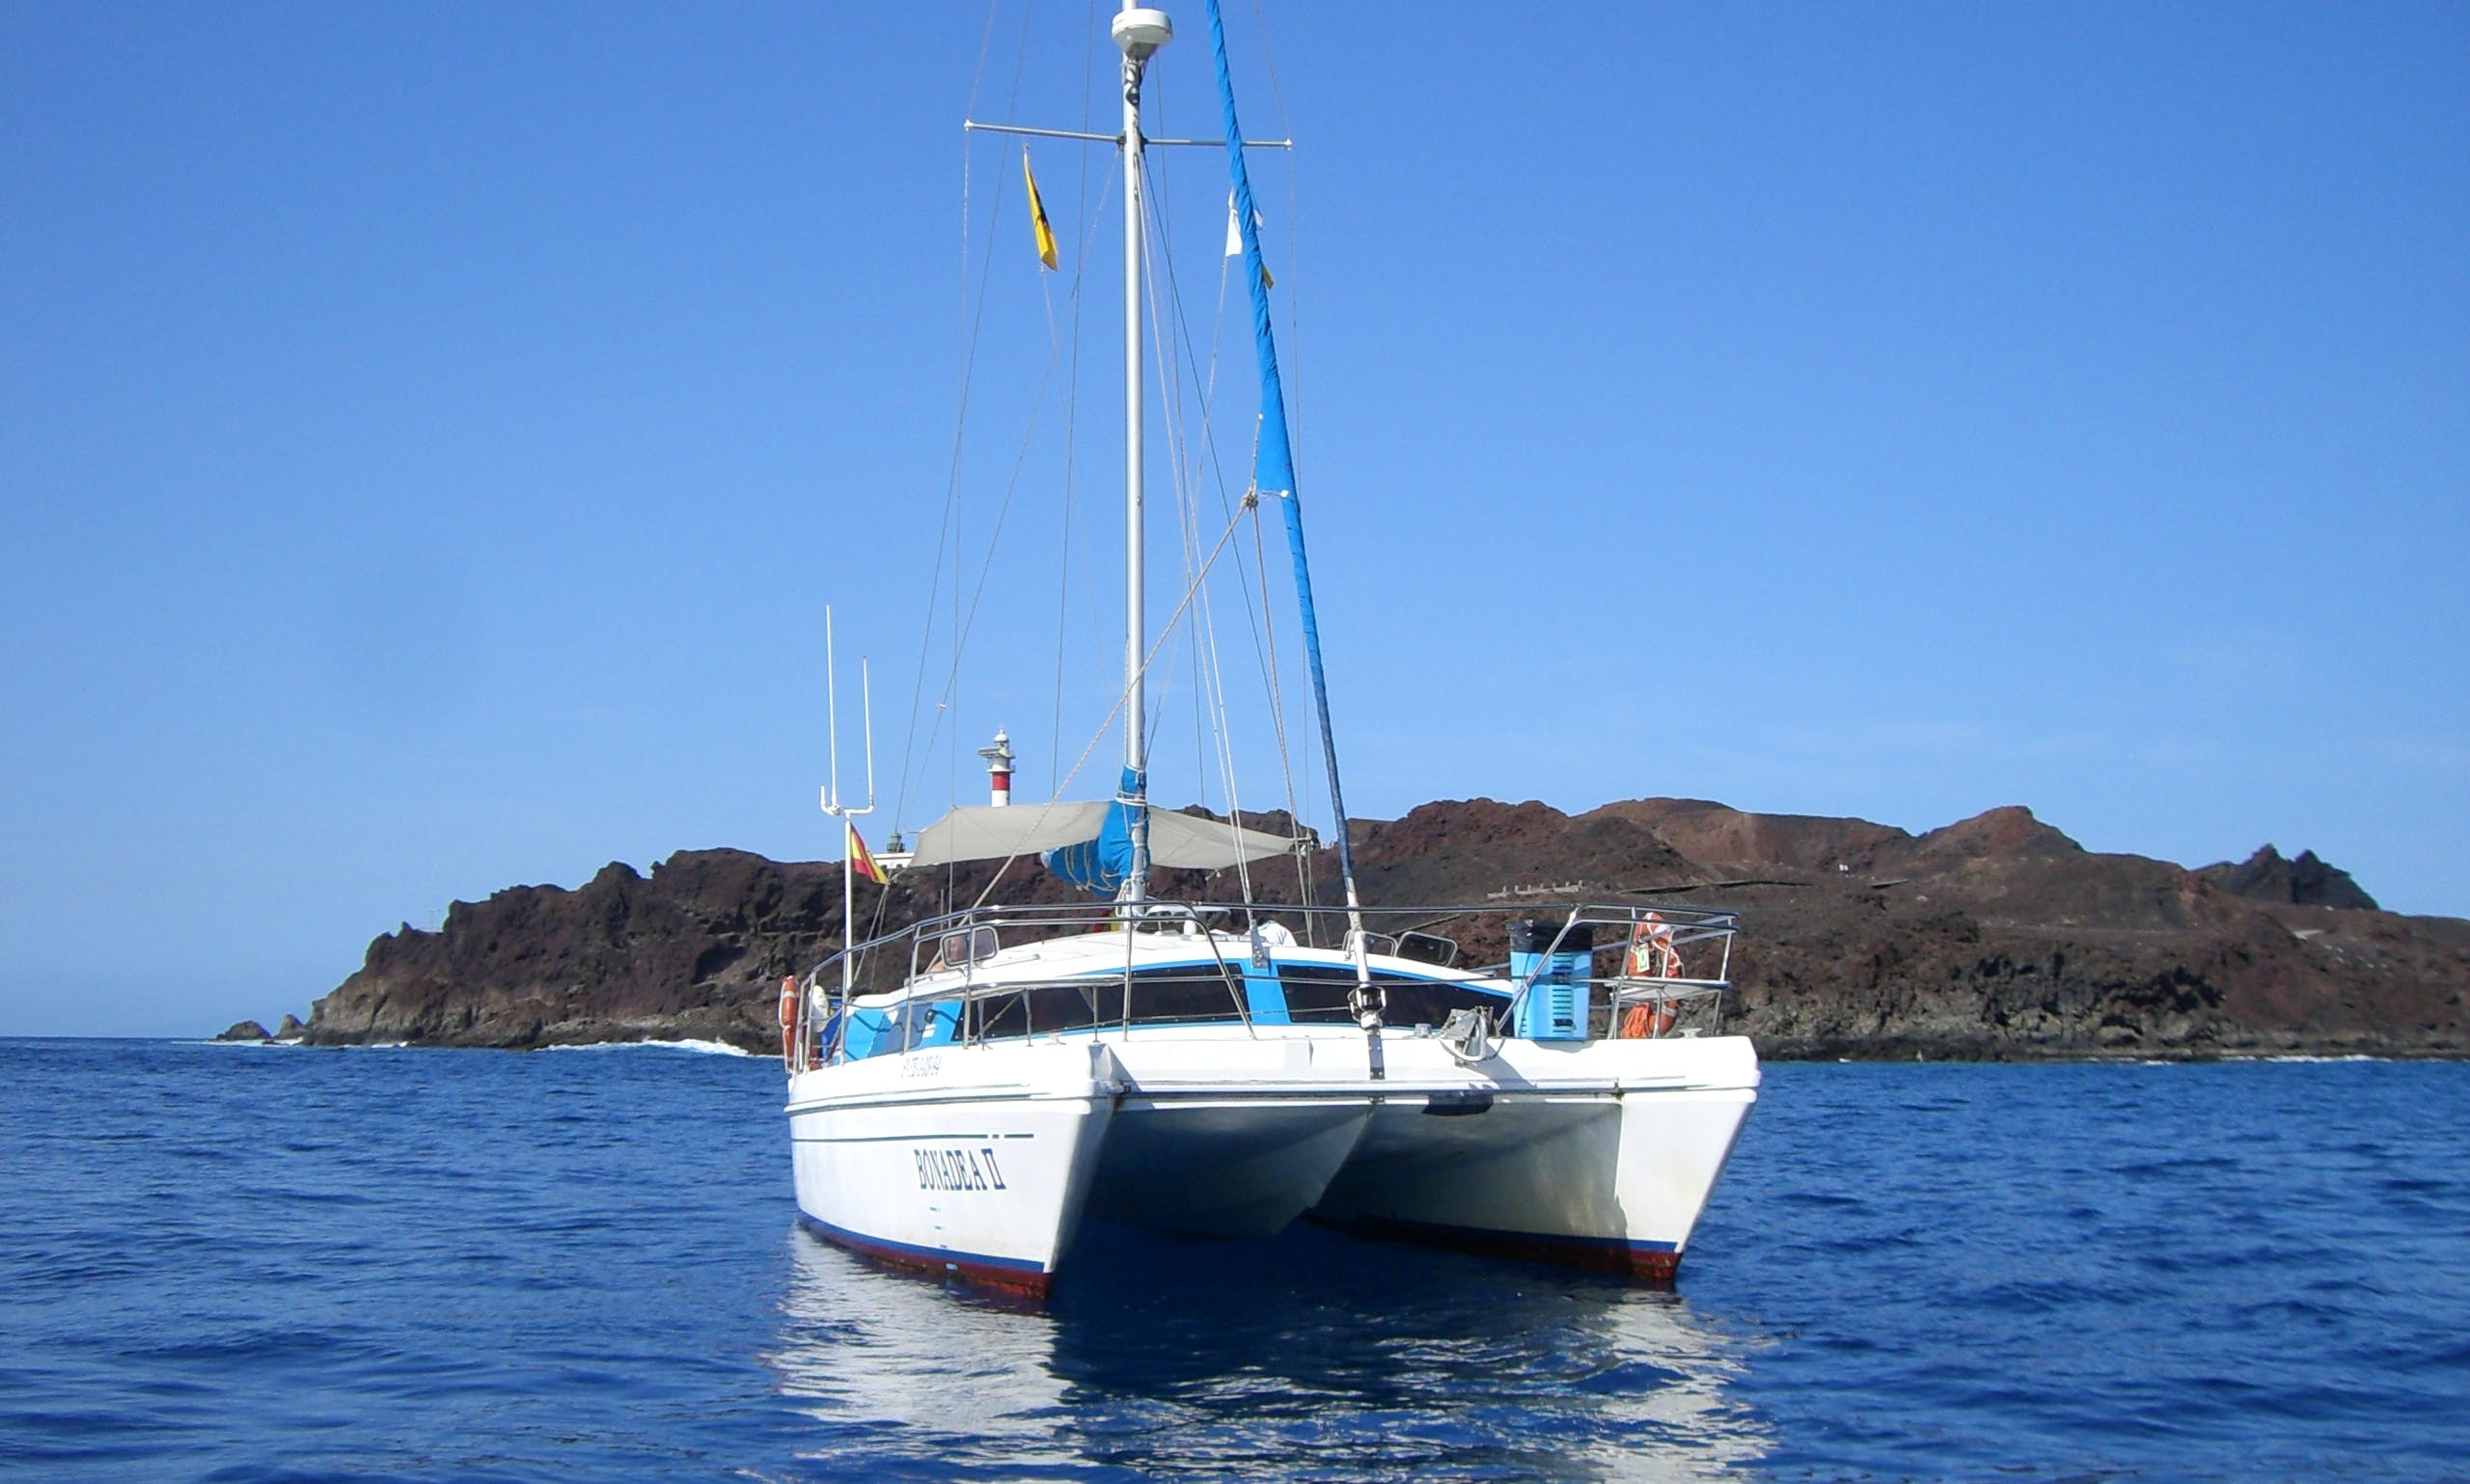 Camataran Excursions for 22 People in Tenerife, Spain